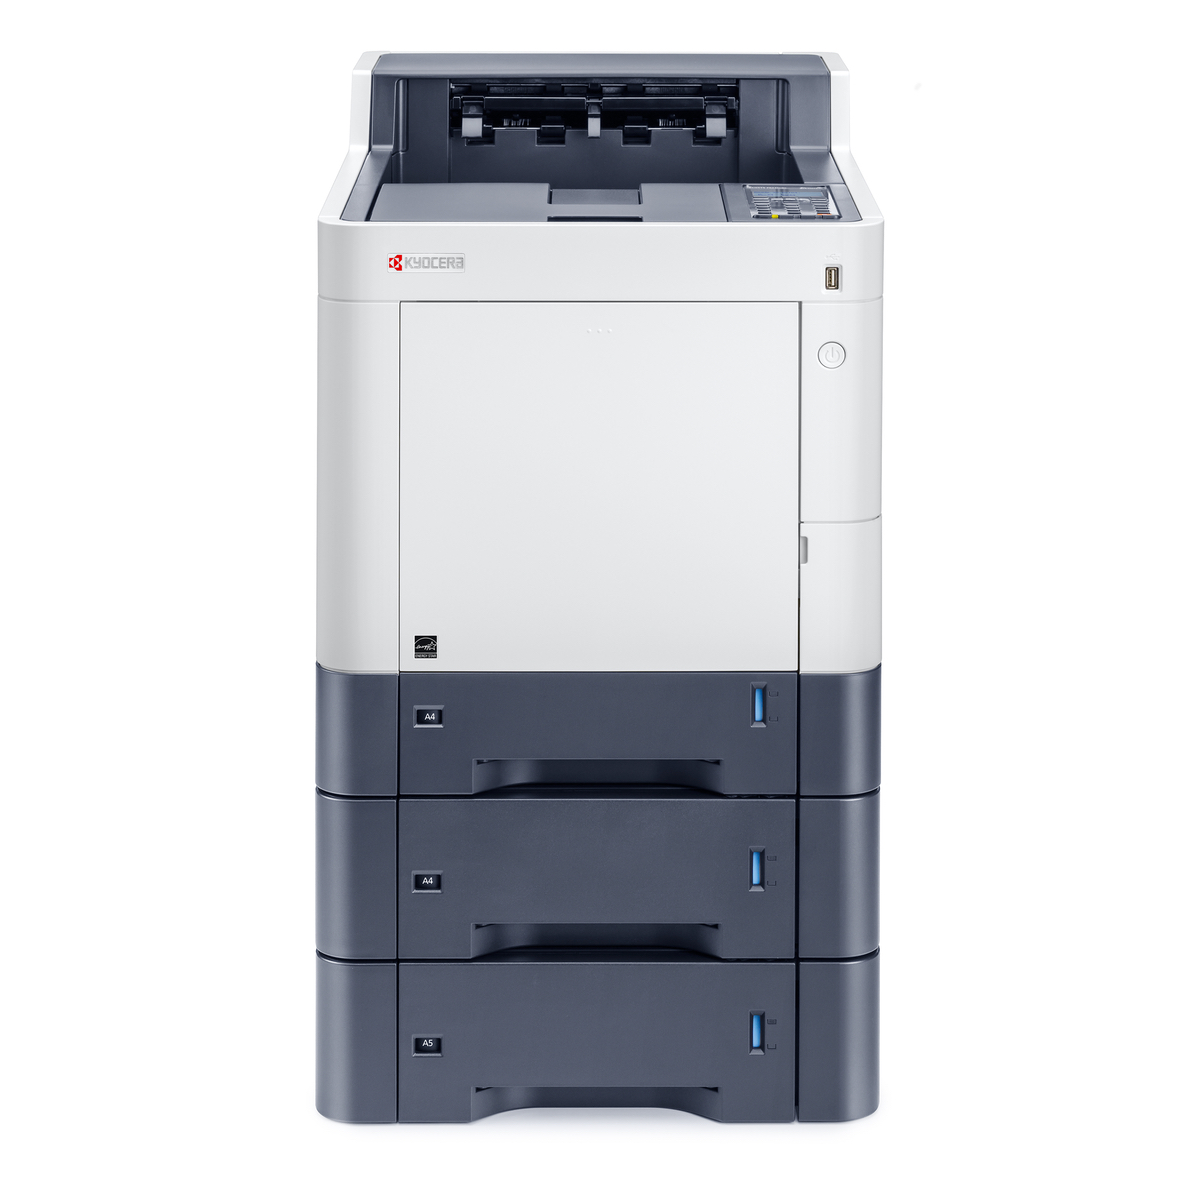 Kyocera Printers:  The Kyocera ECOSYS P6235cdn Printer